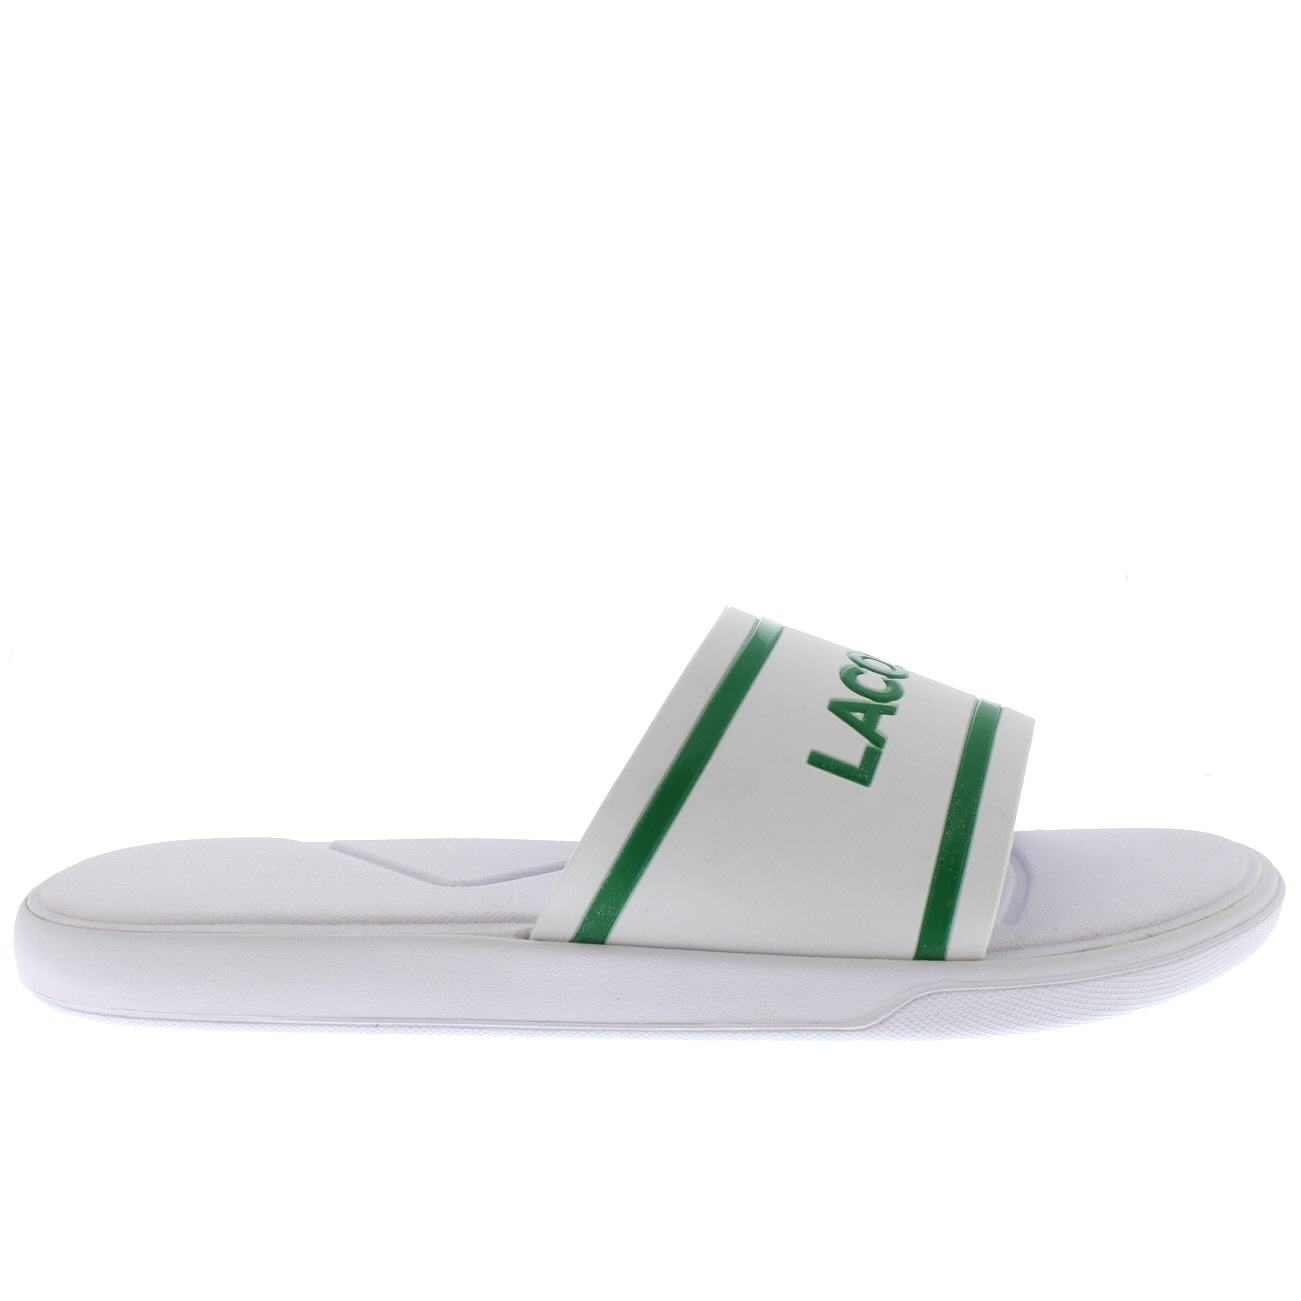 56cb8f3927007 Details about Mens Lacoste L.30 118 2 Slides Casual Flat Beach Holiday  Sport Sandals All Sizes